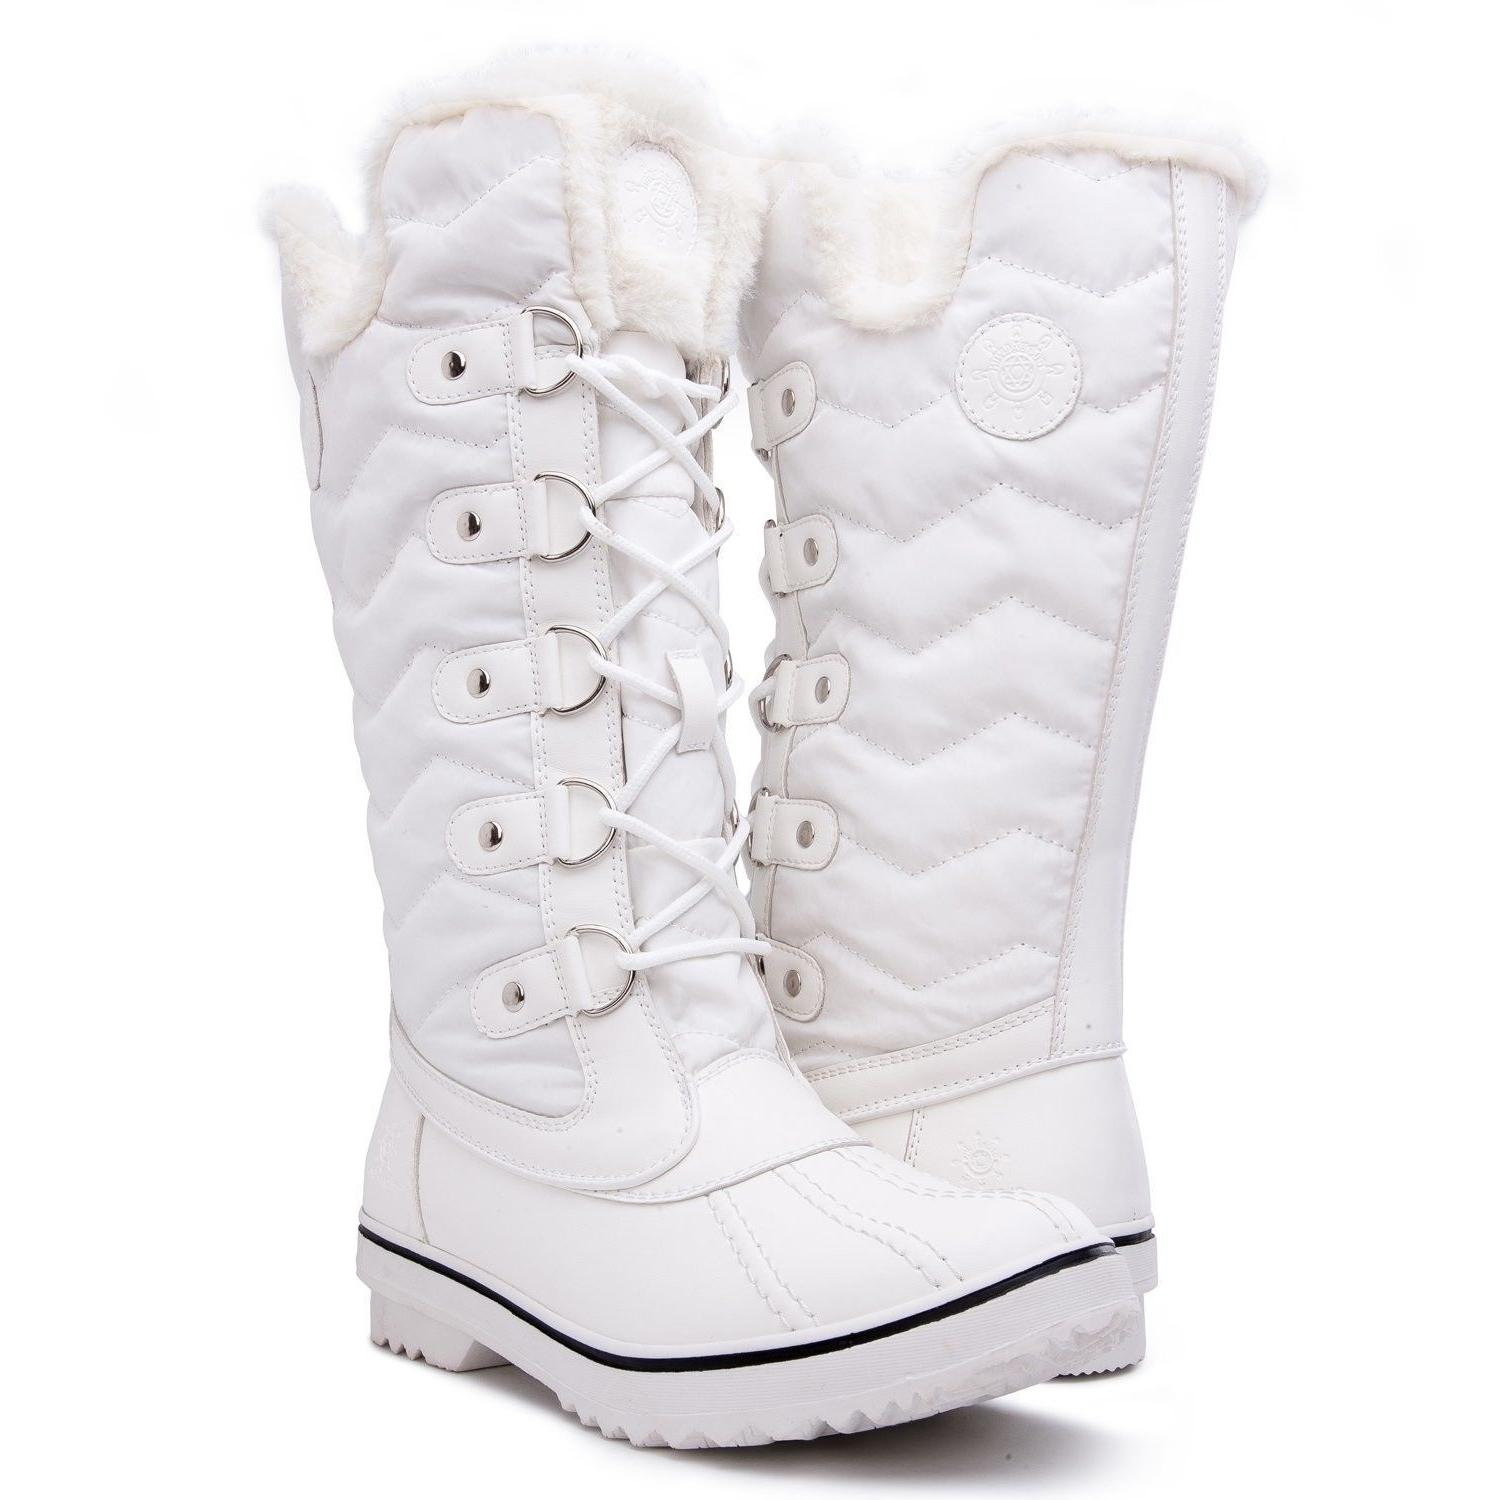 Kingshow Women's Globalwin White Waterproof Winter Boots - 5